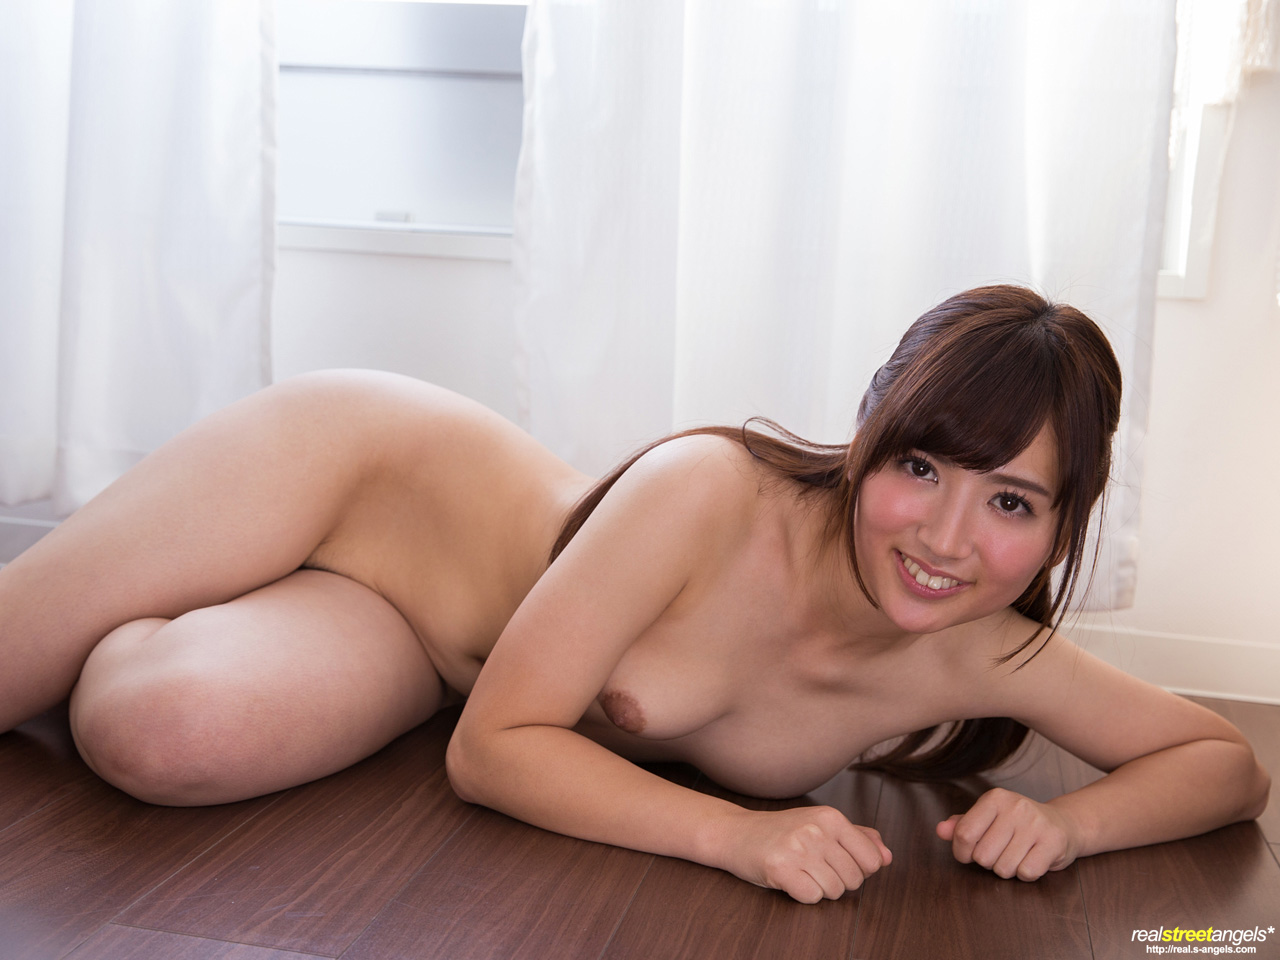 [Real Street Angels] M388 Alisa ありさ 22歳 [120P35.91MB] alisa_rsa_099-jpg